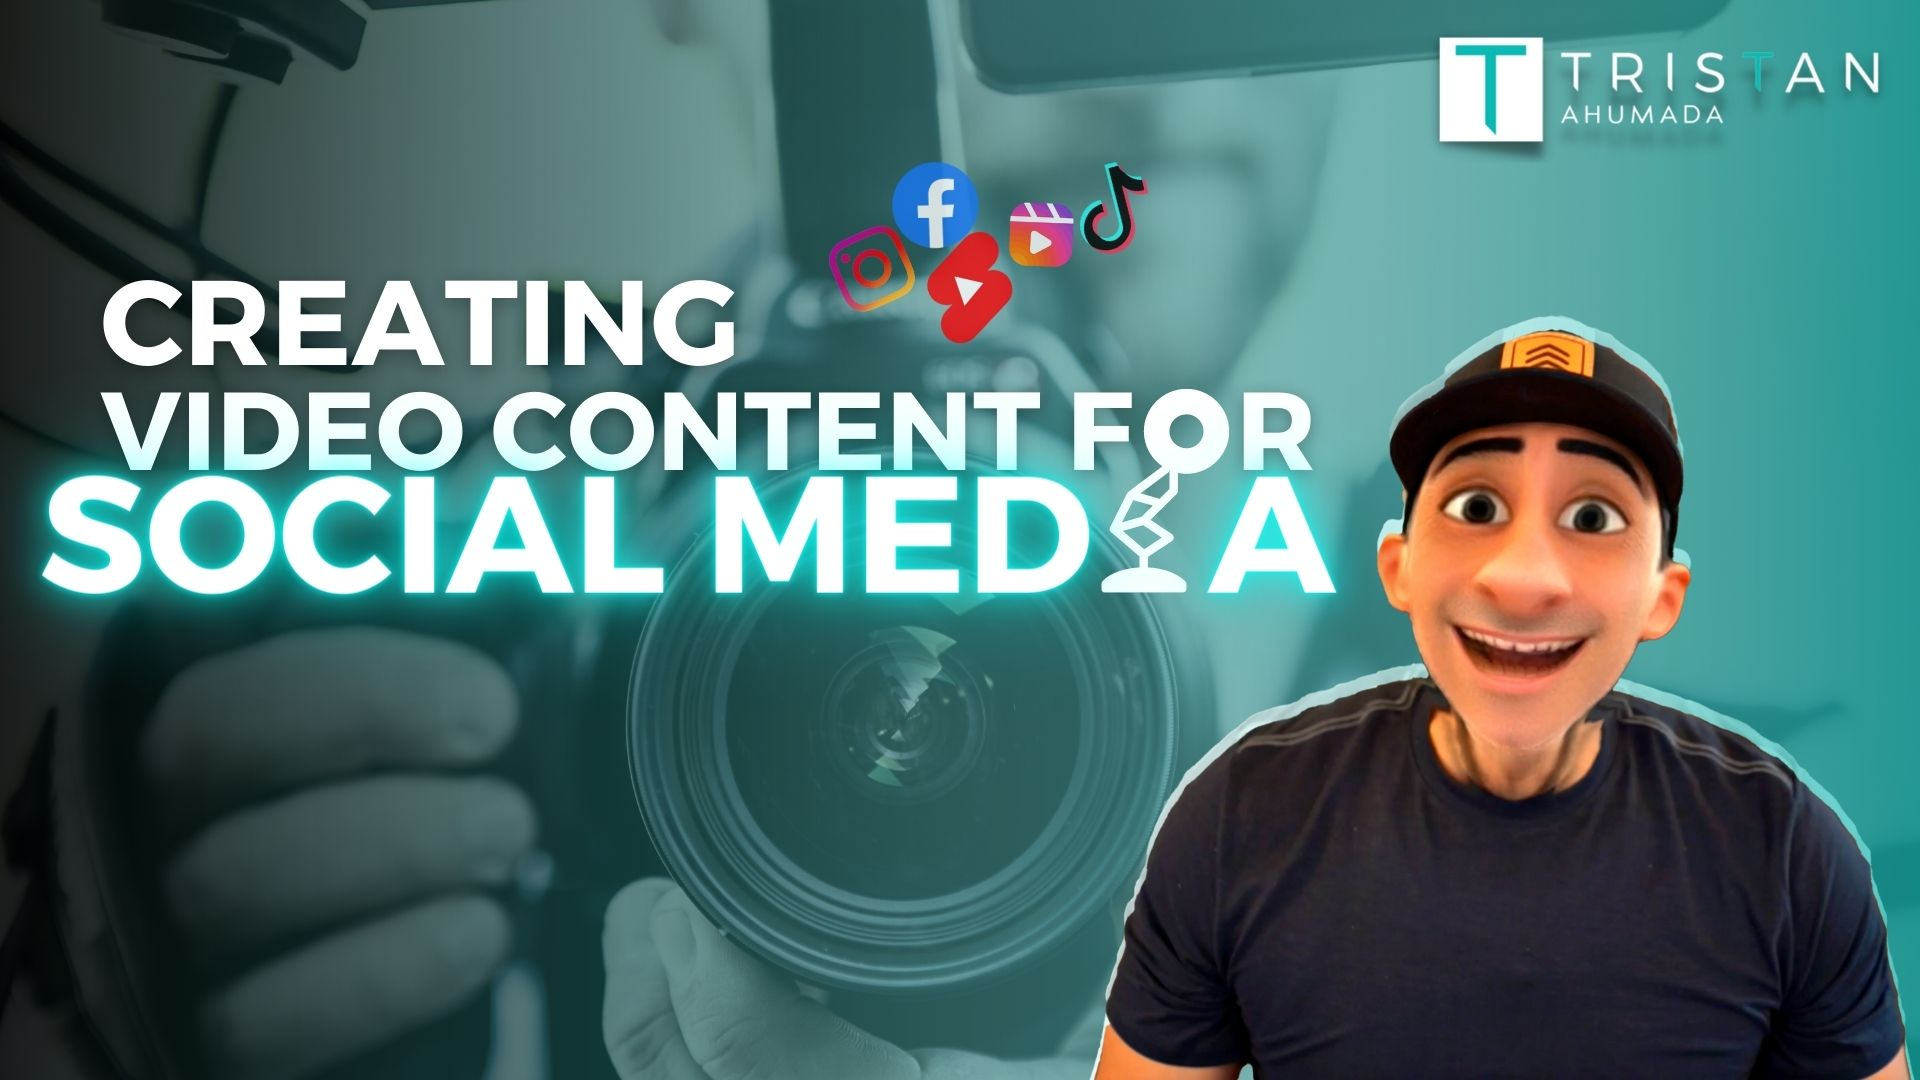 Creating Video Content for Social Media